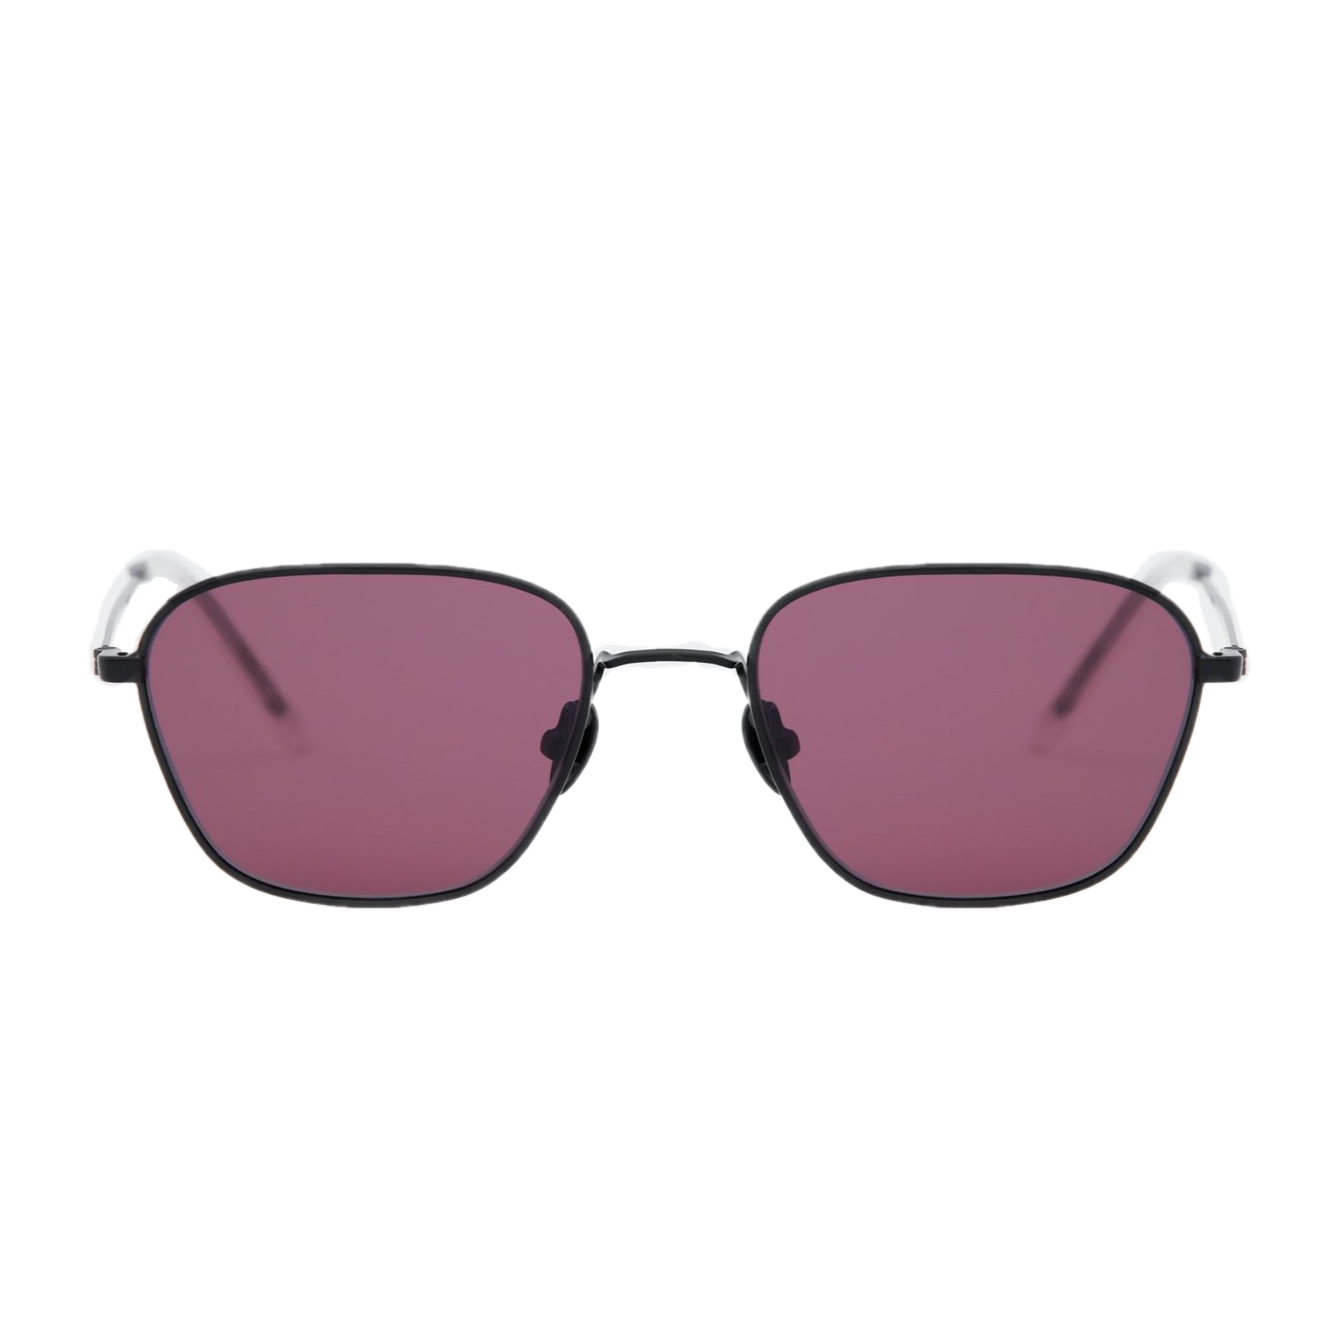 OTIS / BLACK / CRIMSON PINK LENS